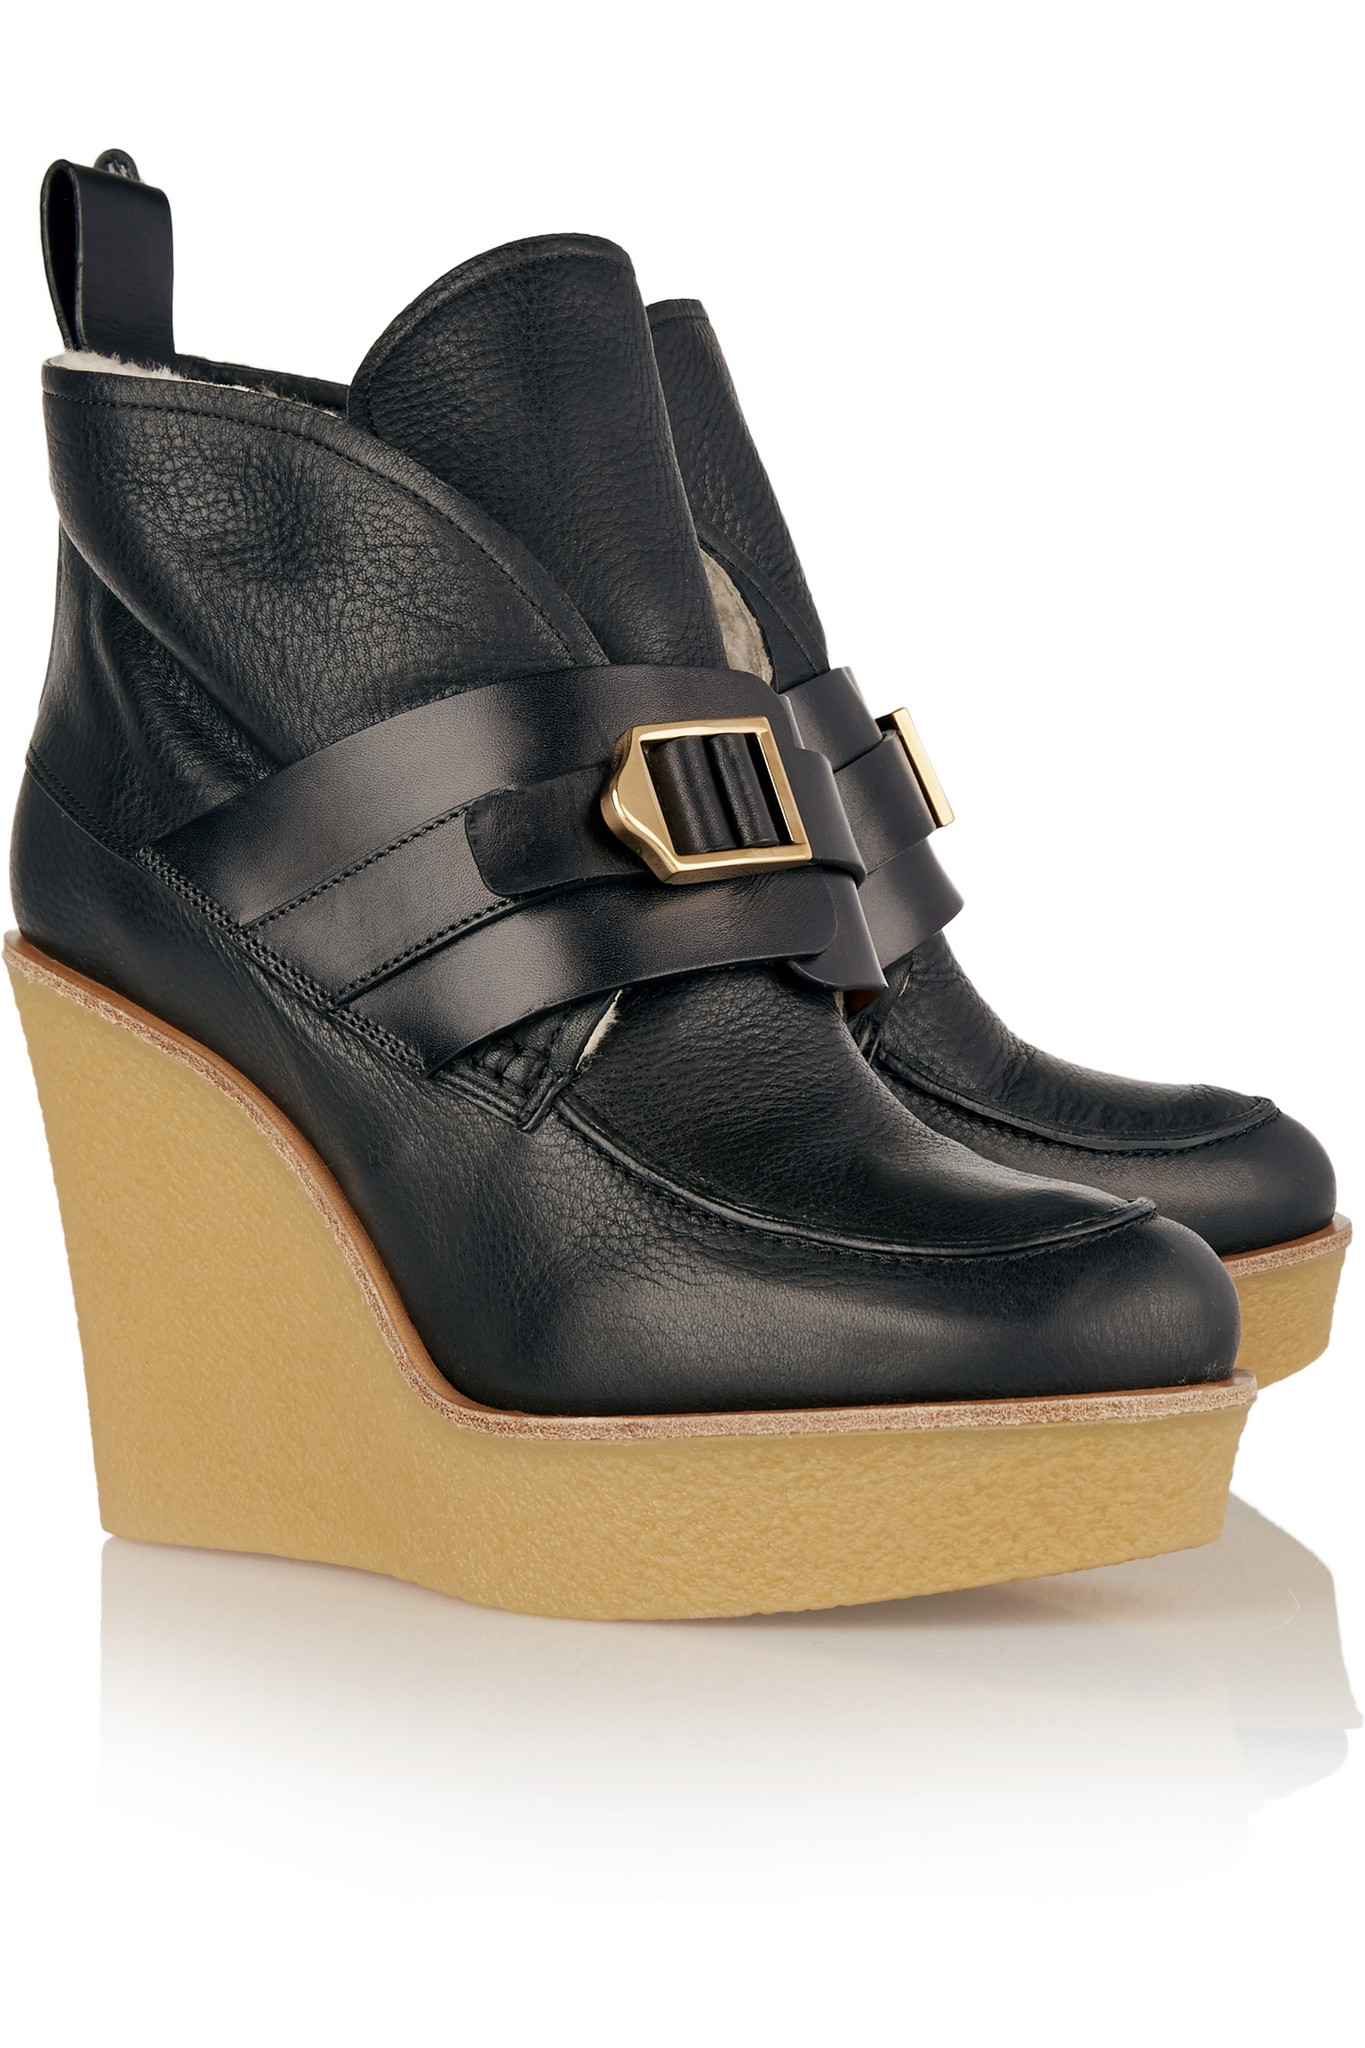 Chloé Shearling-lined Leather Wedge Ankle Boots in Black